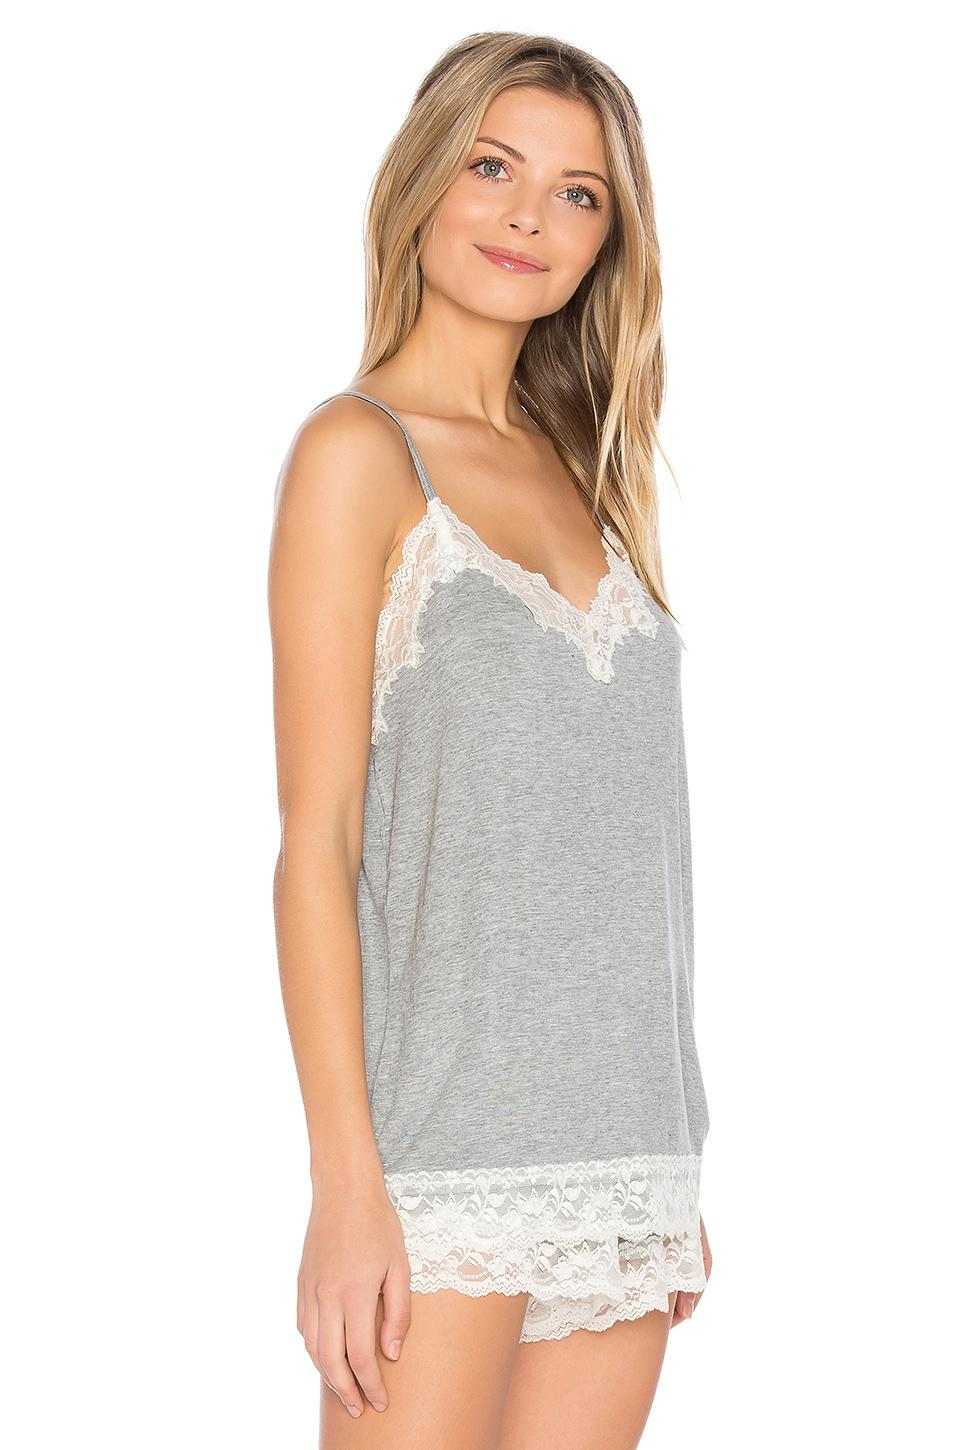 Discount Largest Supplier Limited Flora Nikrooz Snuggle Knit Lace Cami Good Selling Inexpensive Sale Online NK9B78Lj8